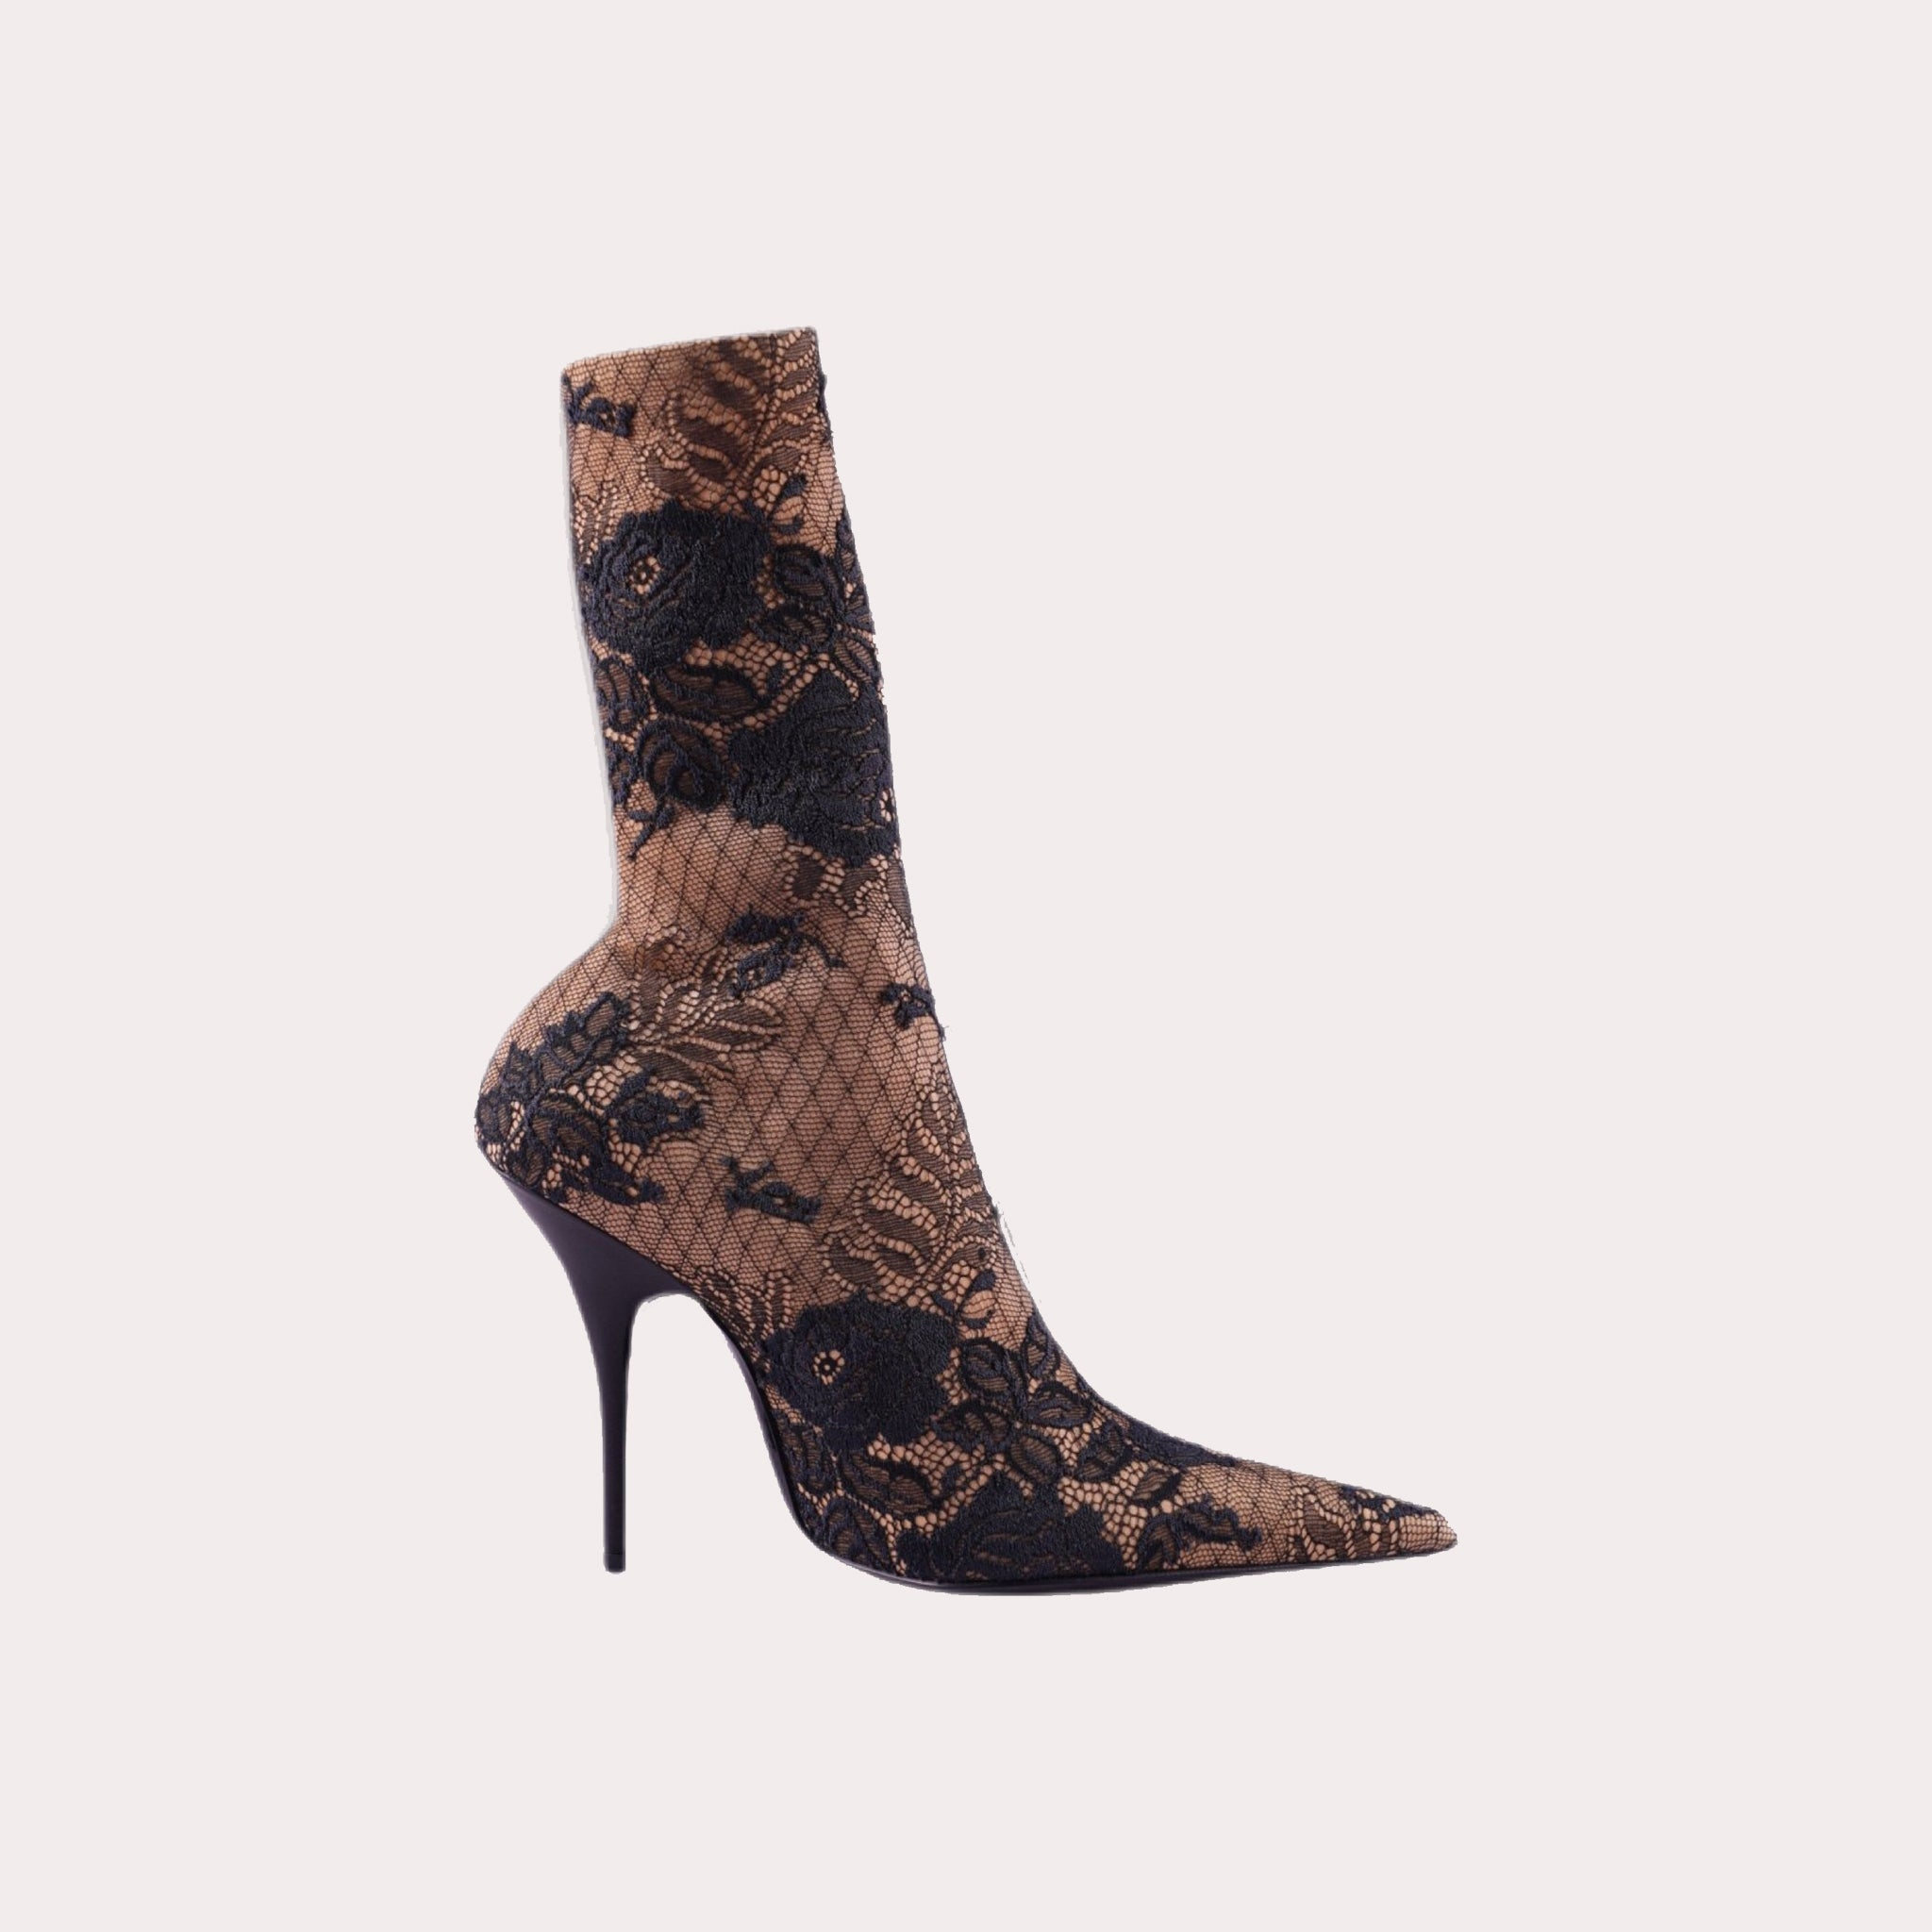 Nude with Black Lace Knife Heel Boots